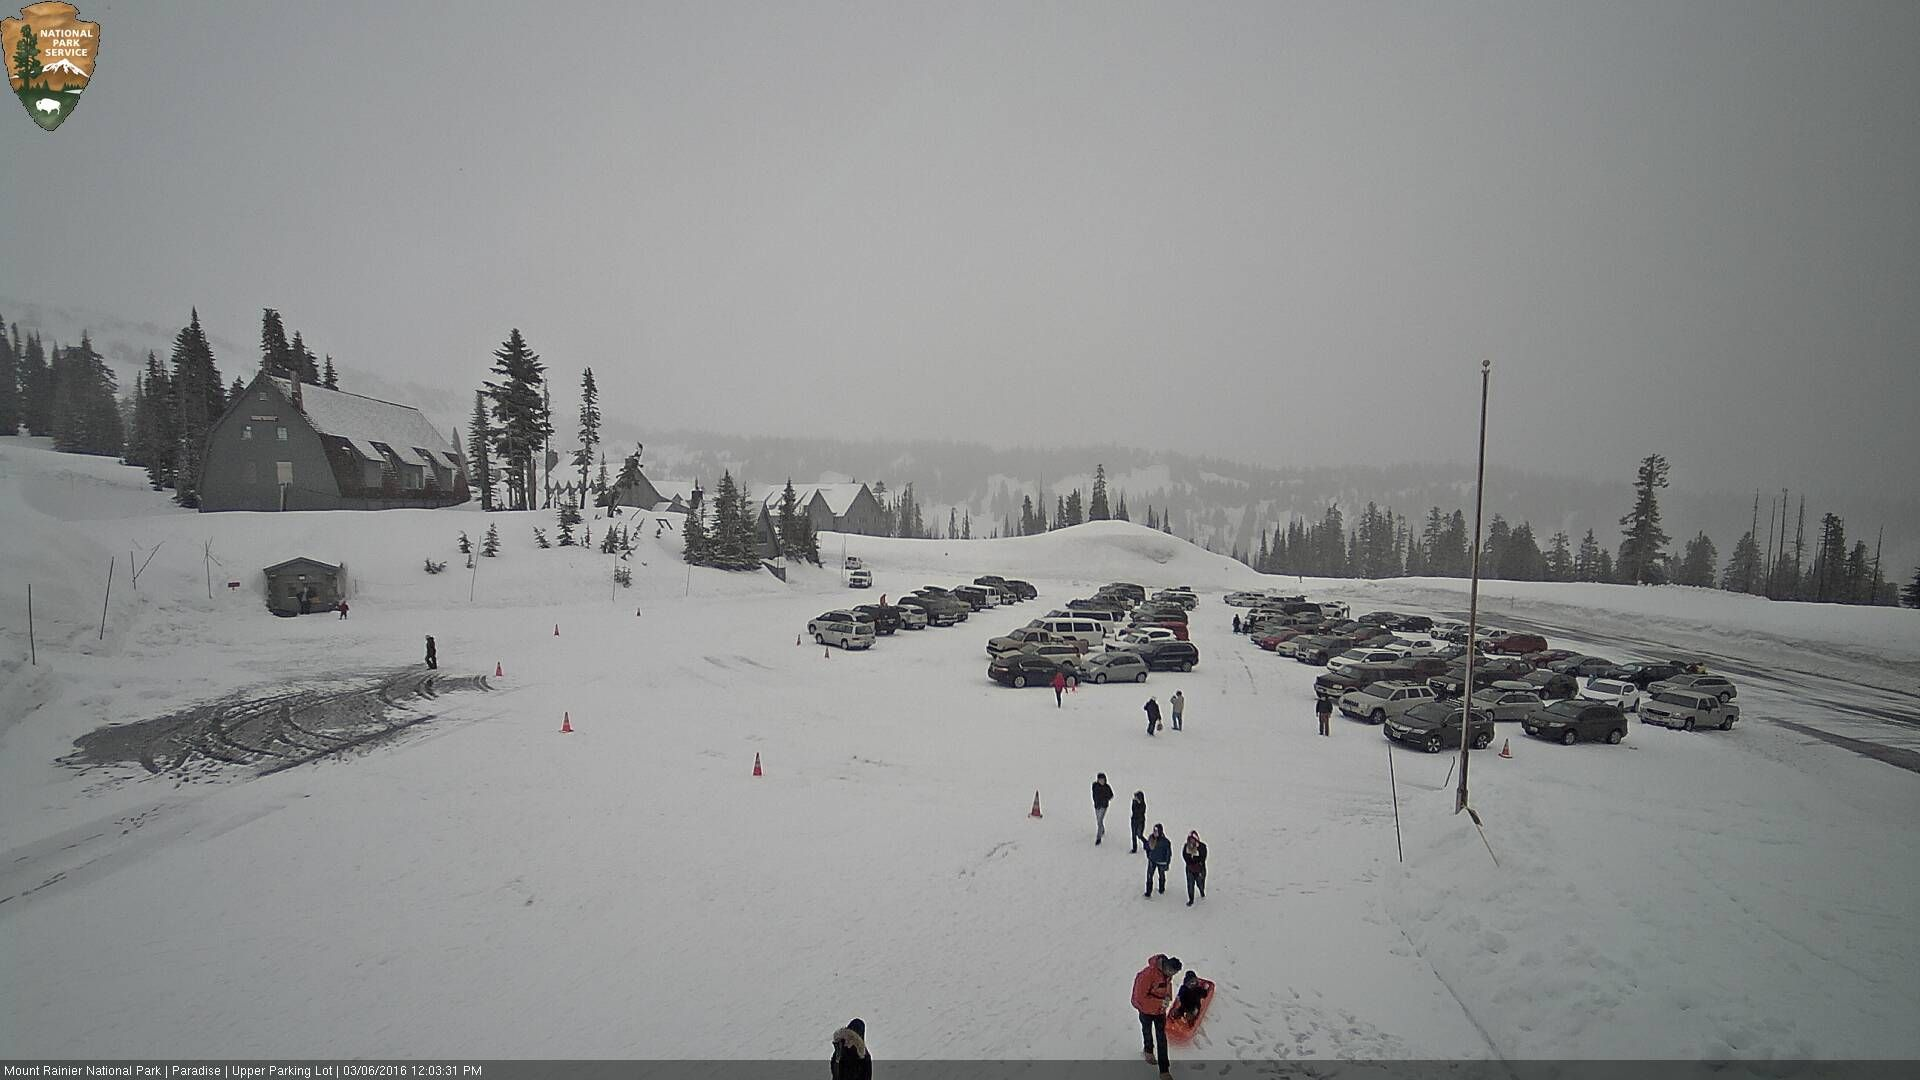 Mt. Rainier NP March 6, 2016 Looking east over the parking